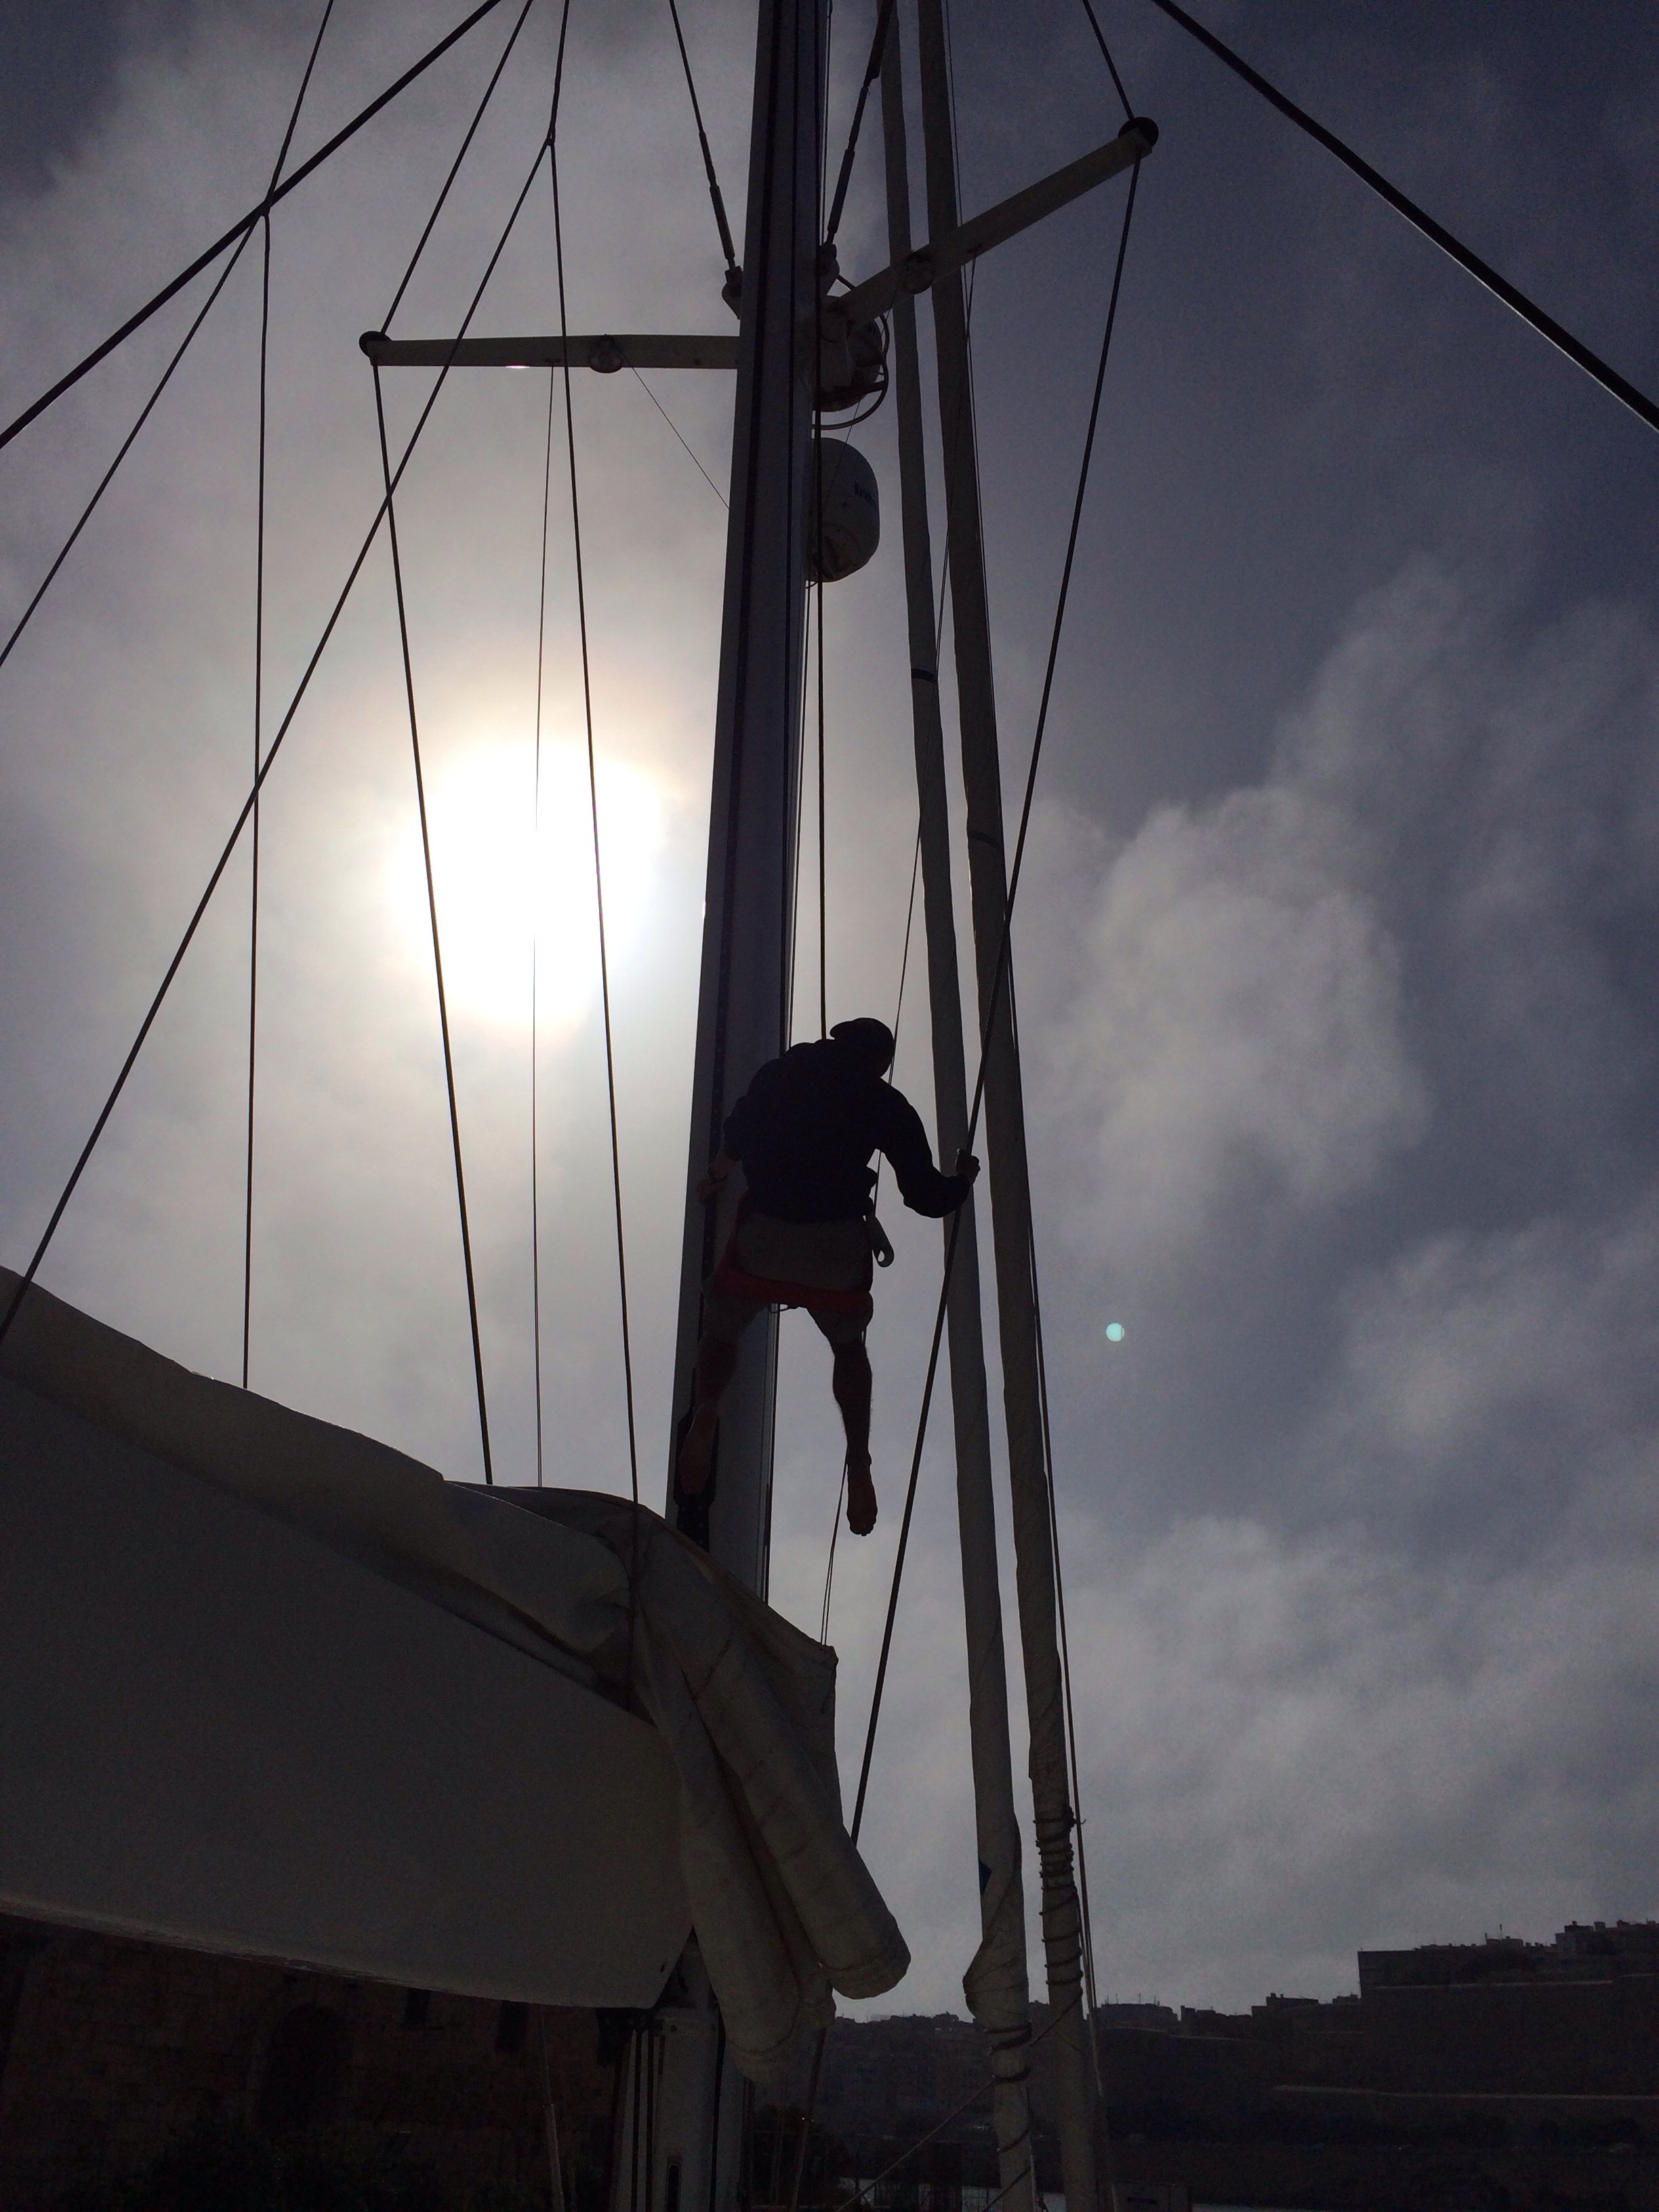 Our new captain, Jorge, climbing the mast.